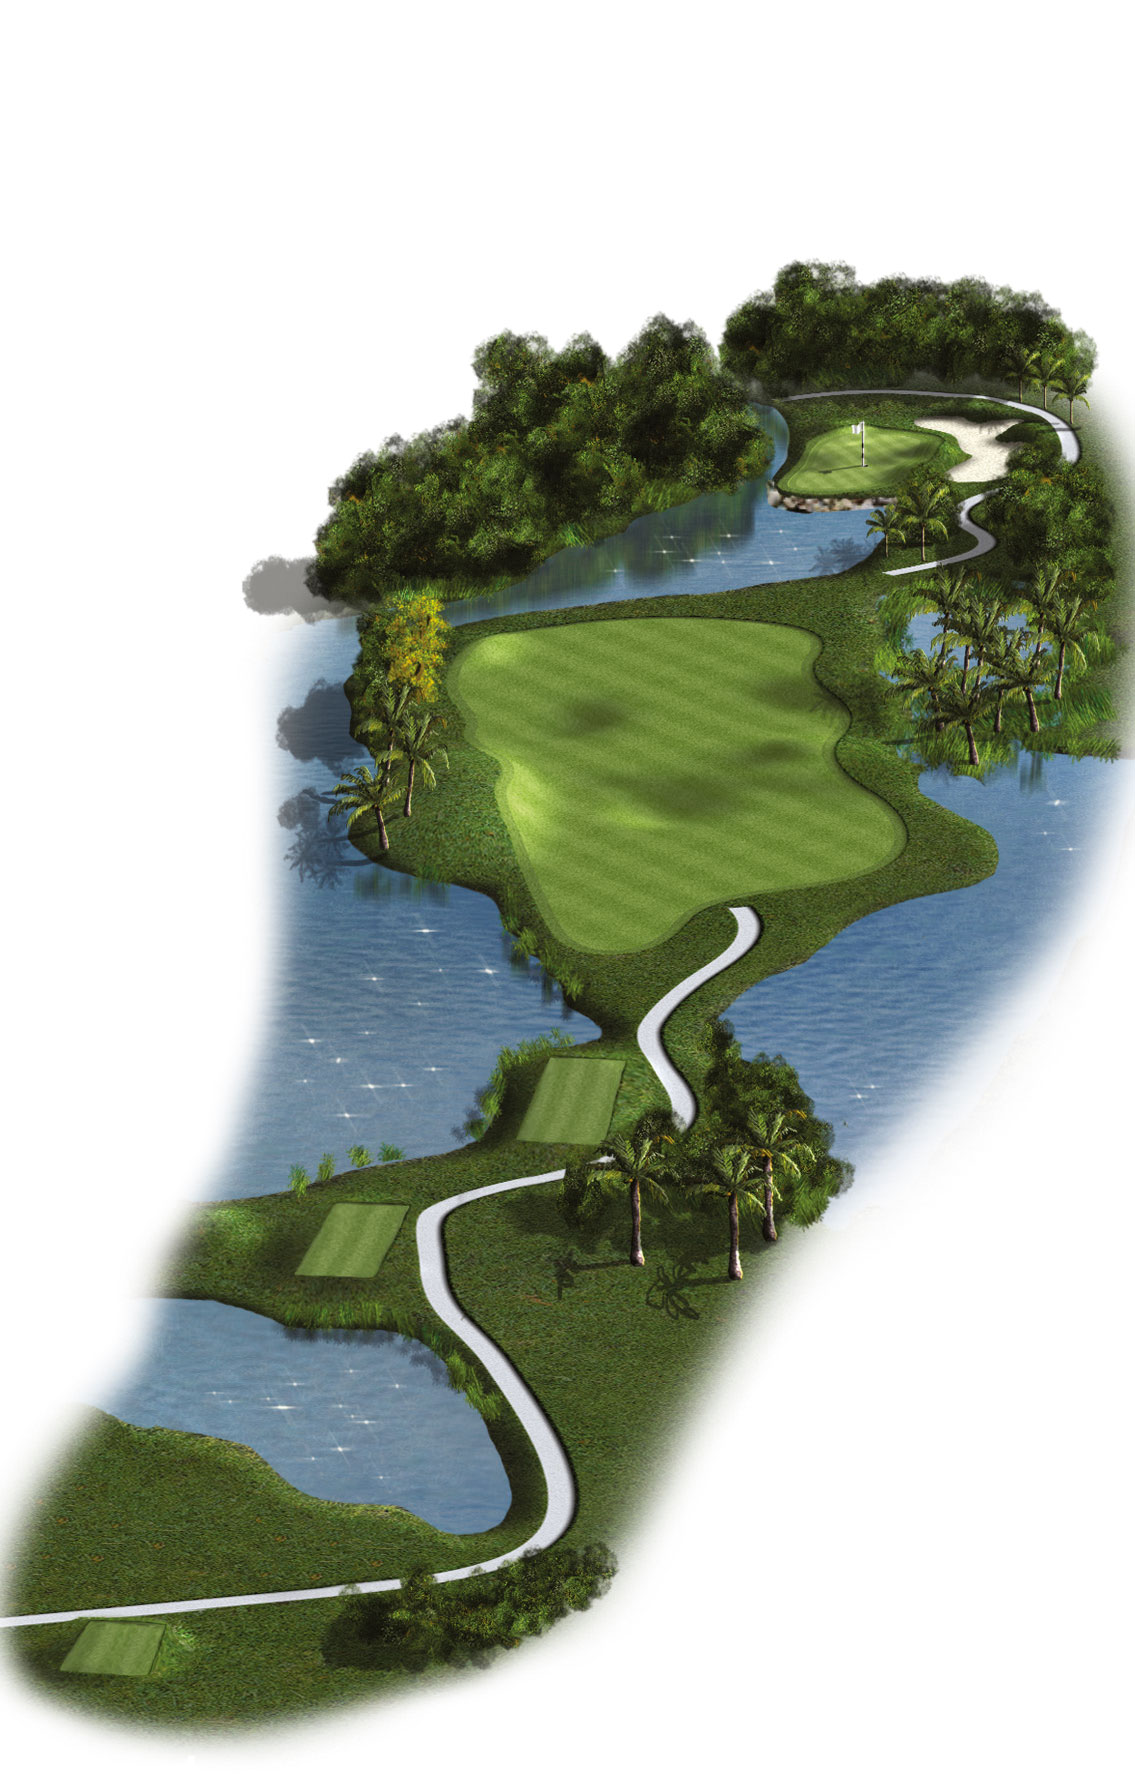 7th Hole - Par 4 (411 meters/449 yards)